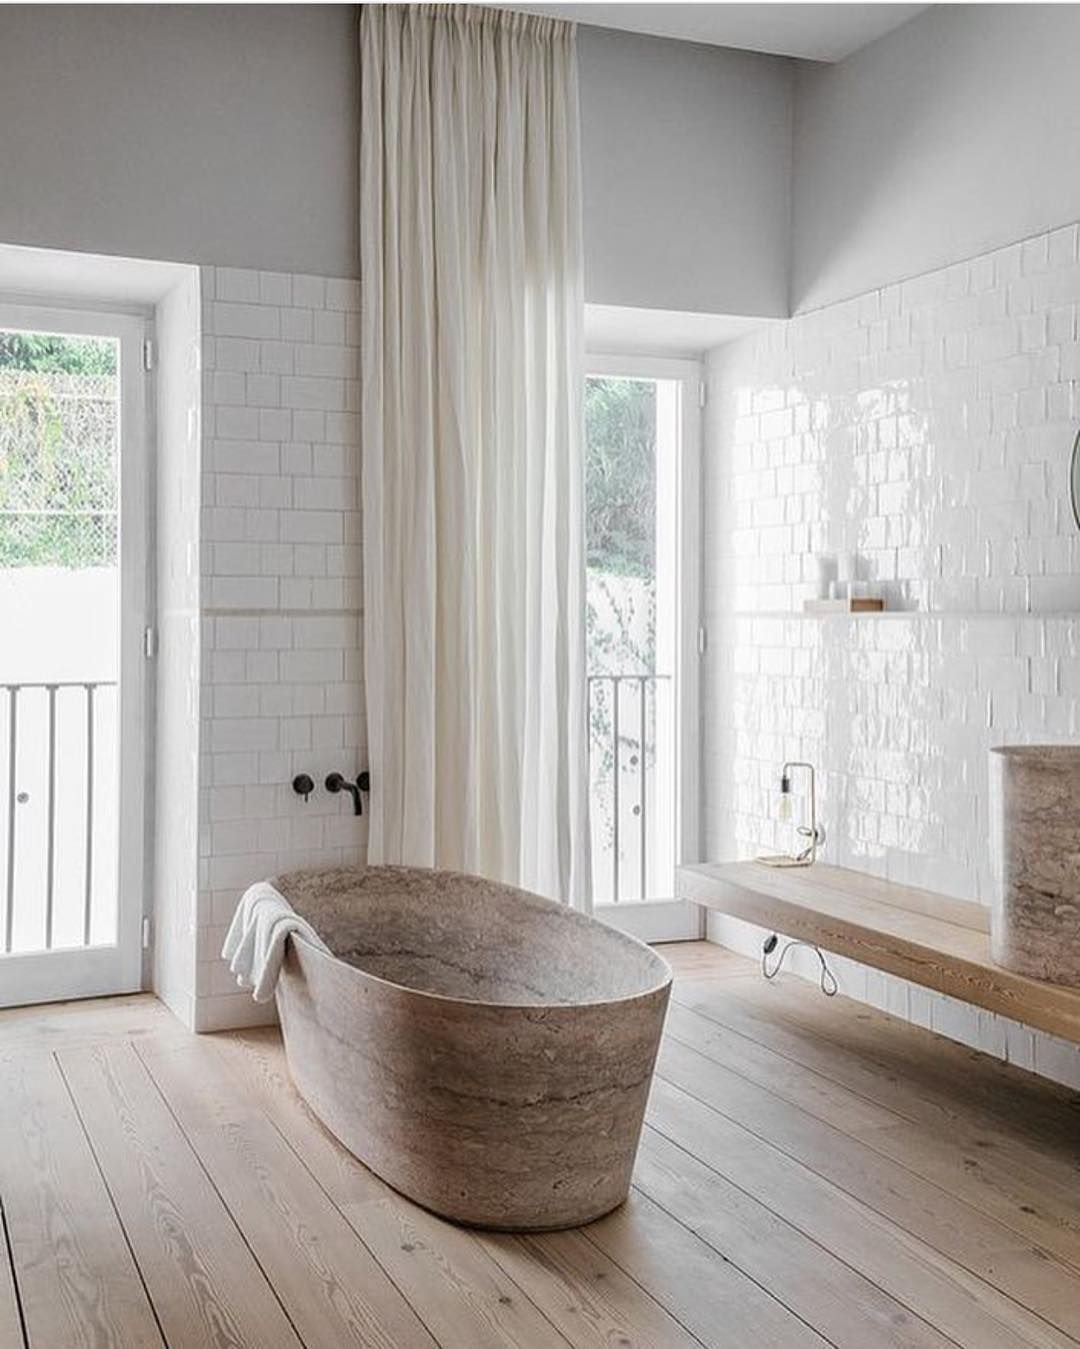 A Perfectly Organised Bathroom In One Day: You May Not Have The Perfect